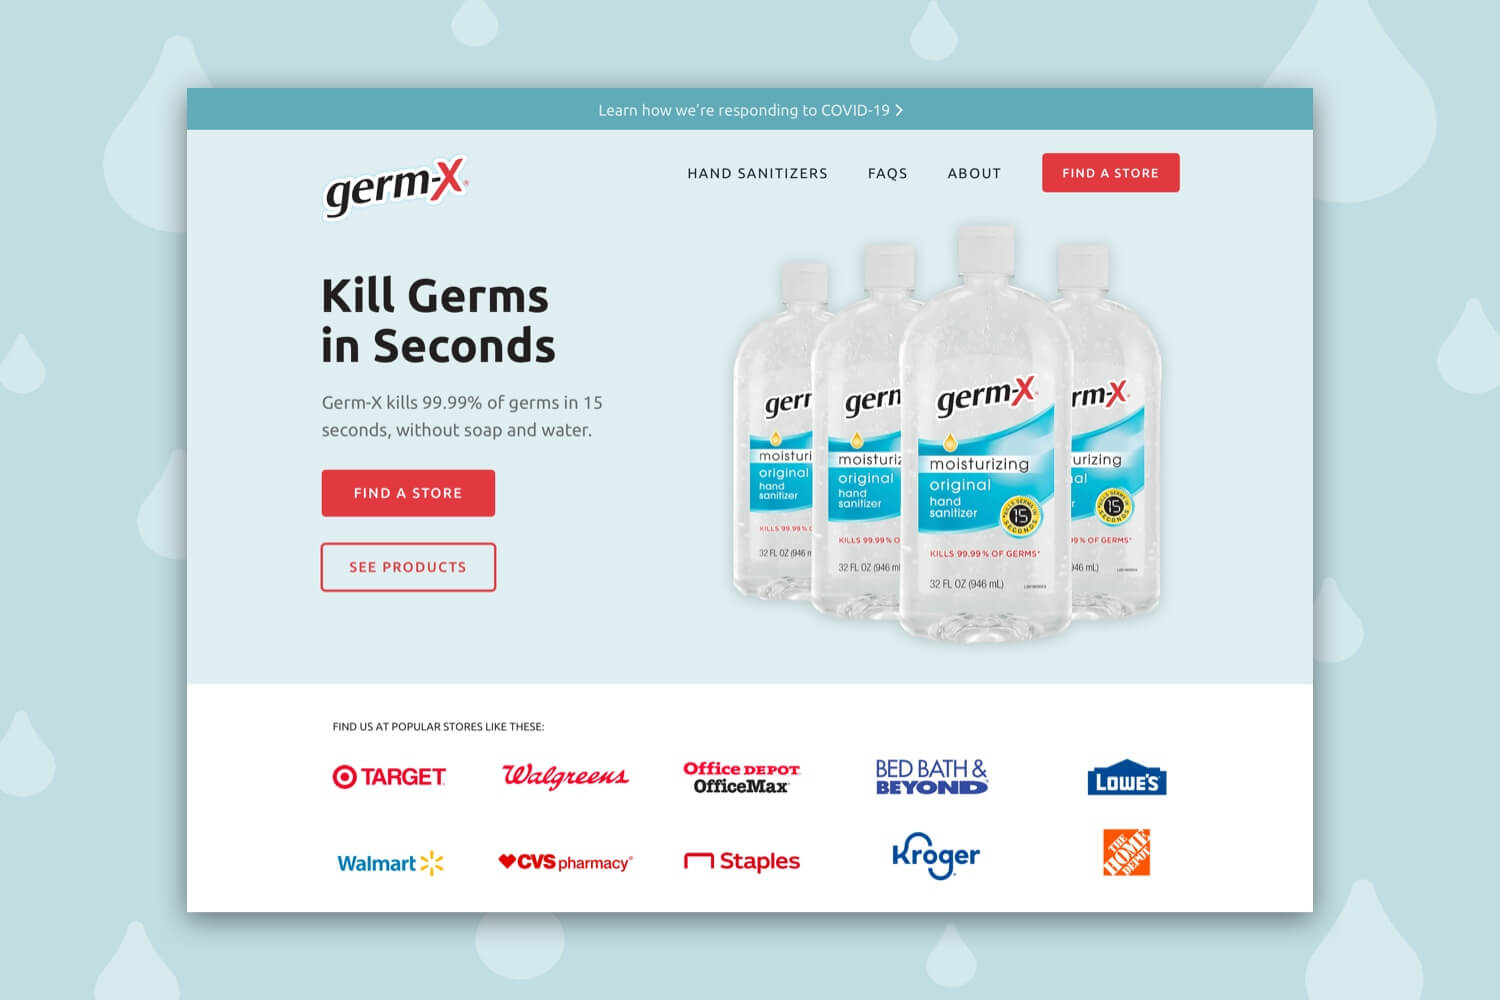 Redesigned header of the Germ-X website that shows bottles of hand sanitizer and logos of stores to buy them.